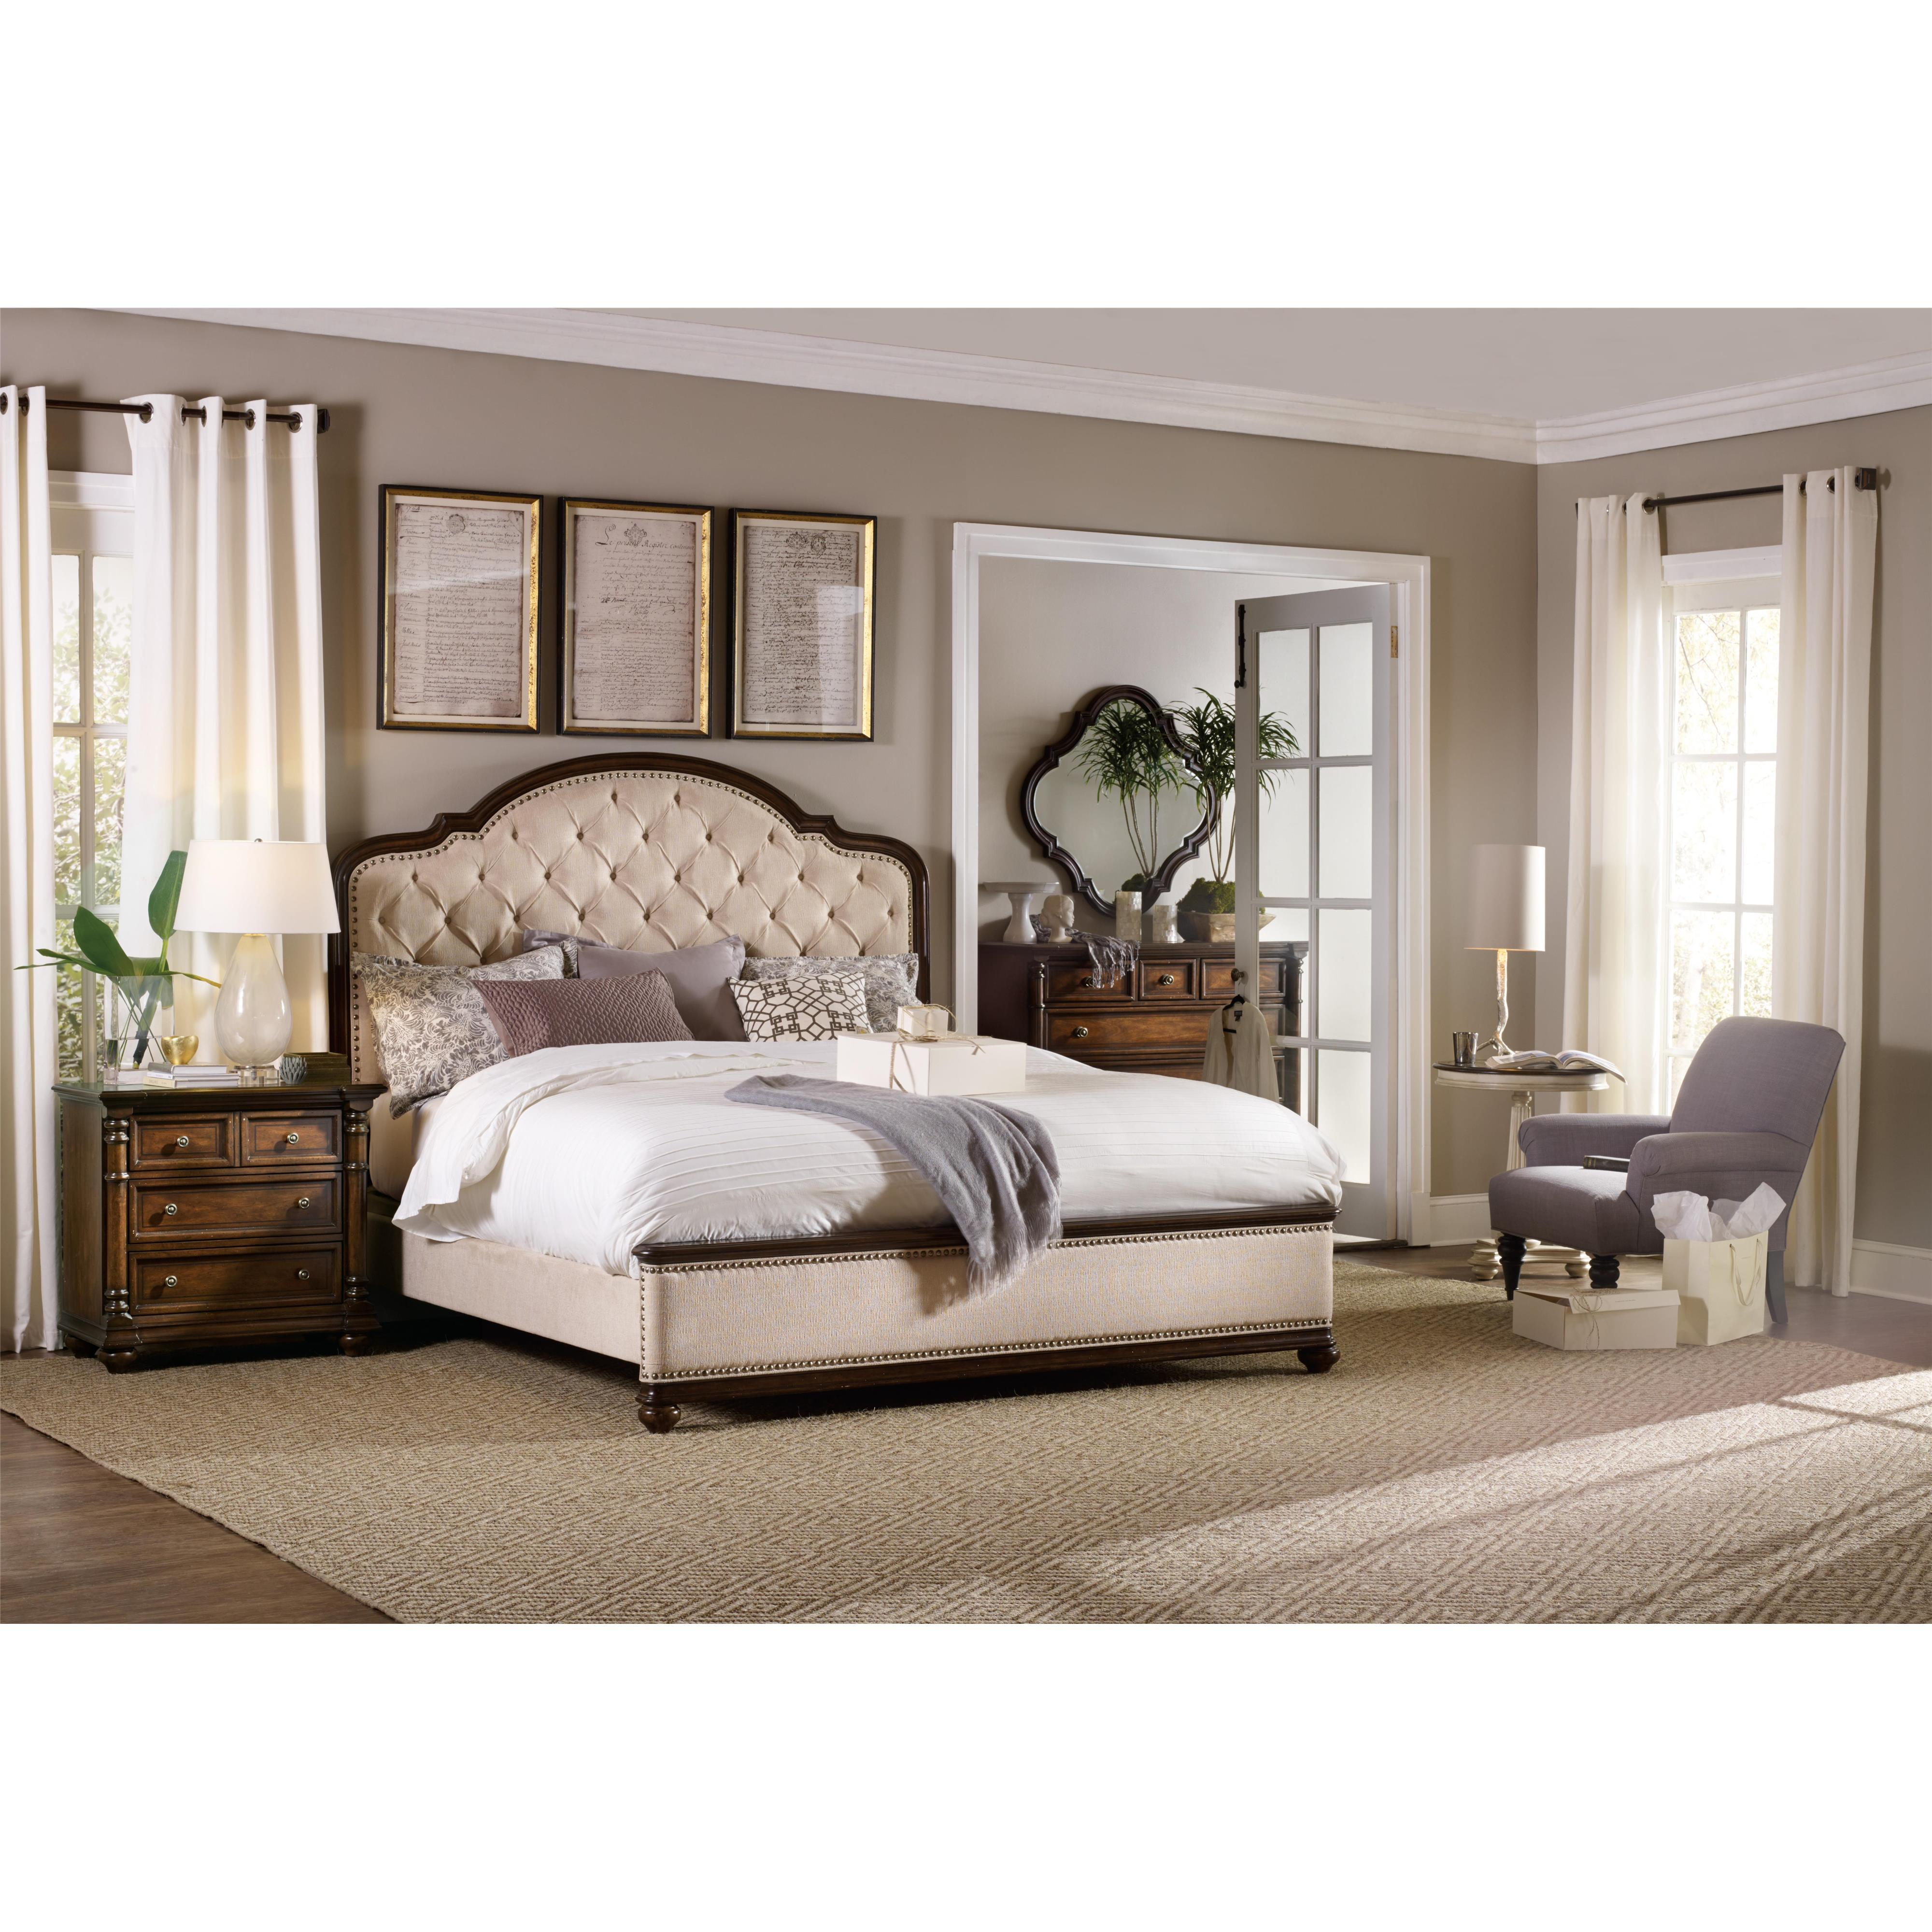 Ohio Bedroom Furniture Hooker Furniture Leesburg King Size Poster Bed With Mahogany